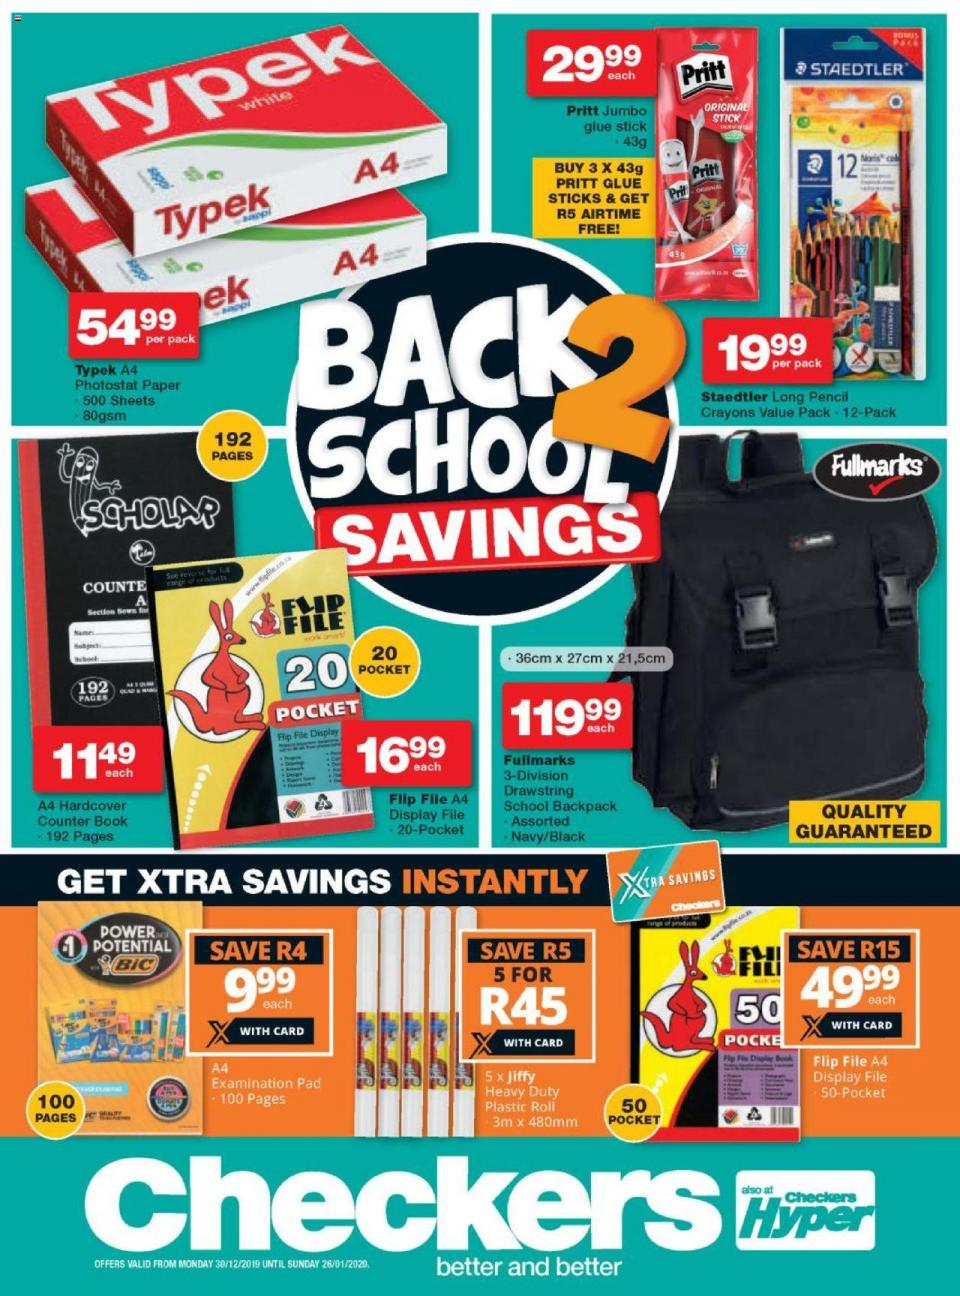 checkers specials back to school promotion 30 december 2019